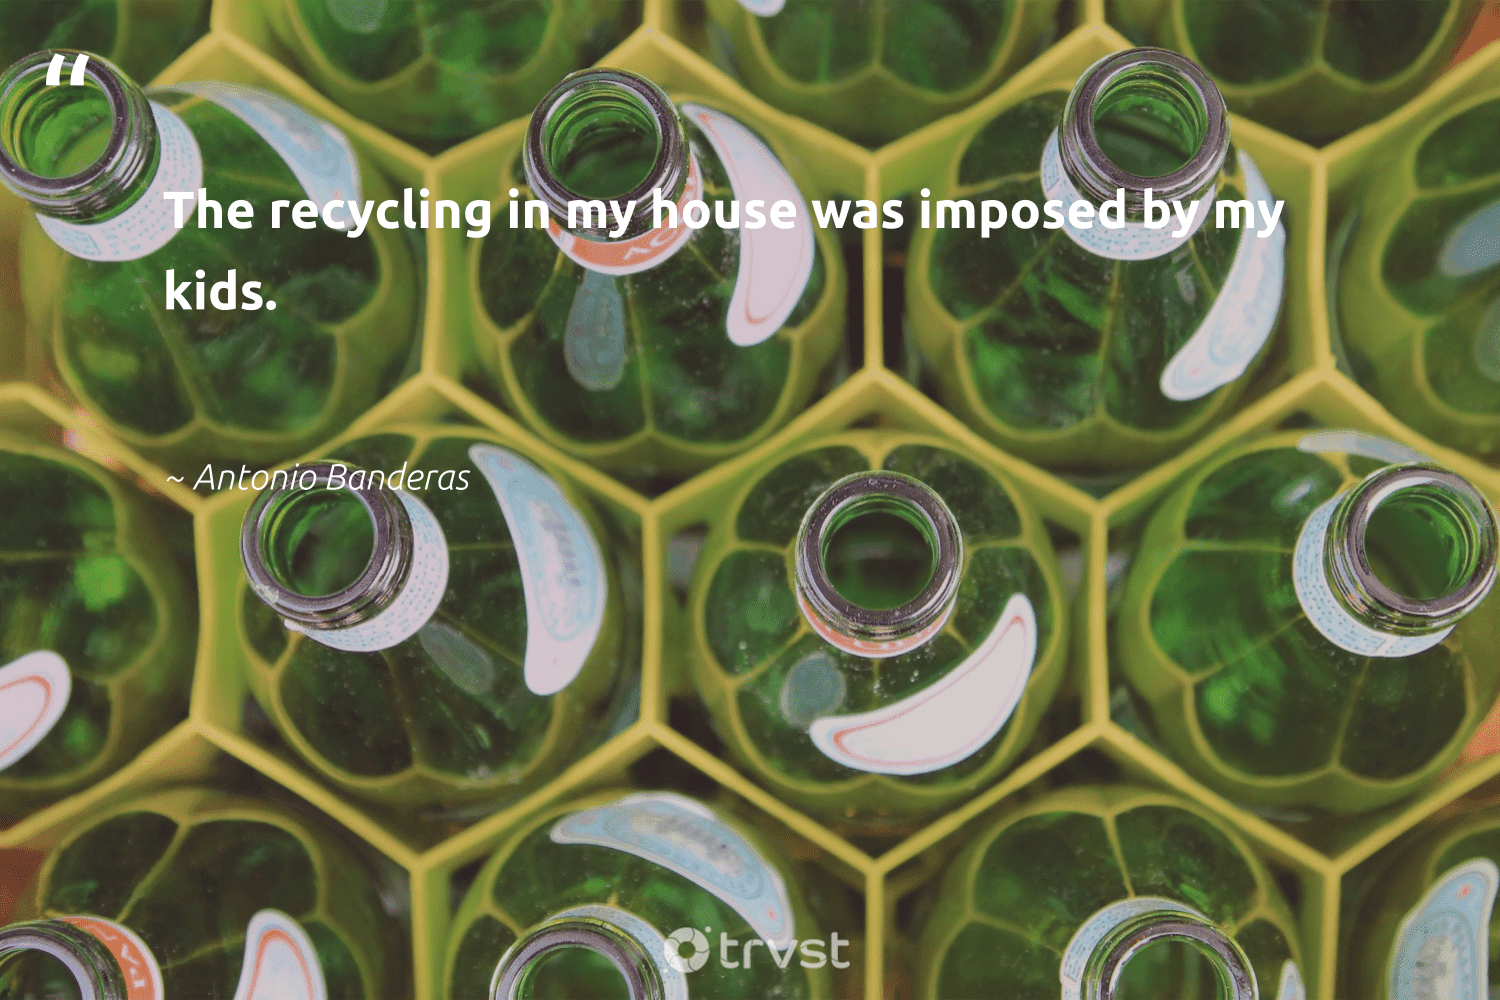 """""""The recycling in my house was imposed by my kids.""""  - Antonio Banderas #trvst #quotes #recycling #repair #ecoconscious #ethical #bethechange #upcycling #ecoactivism #biodegradable #impact #reducereuserecycle"""